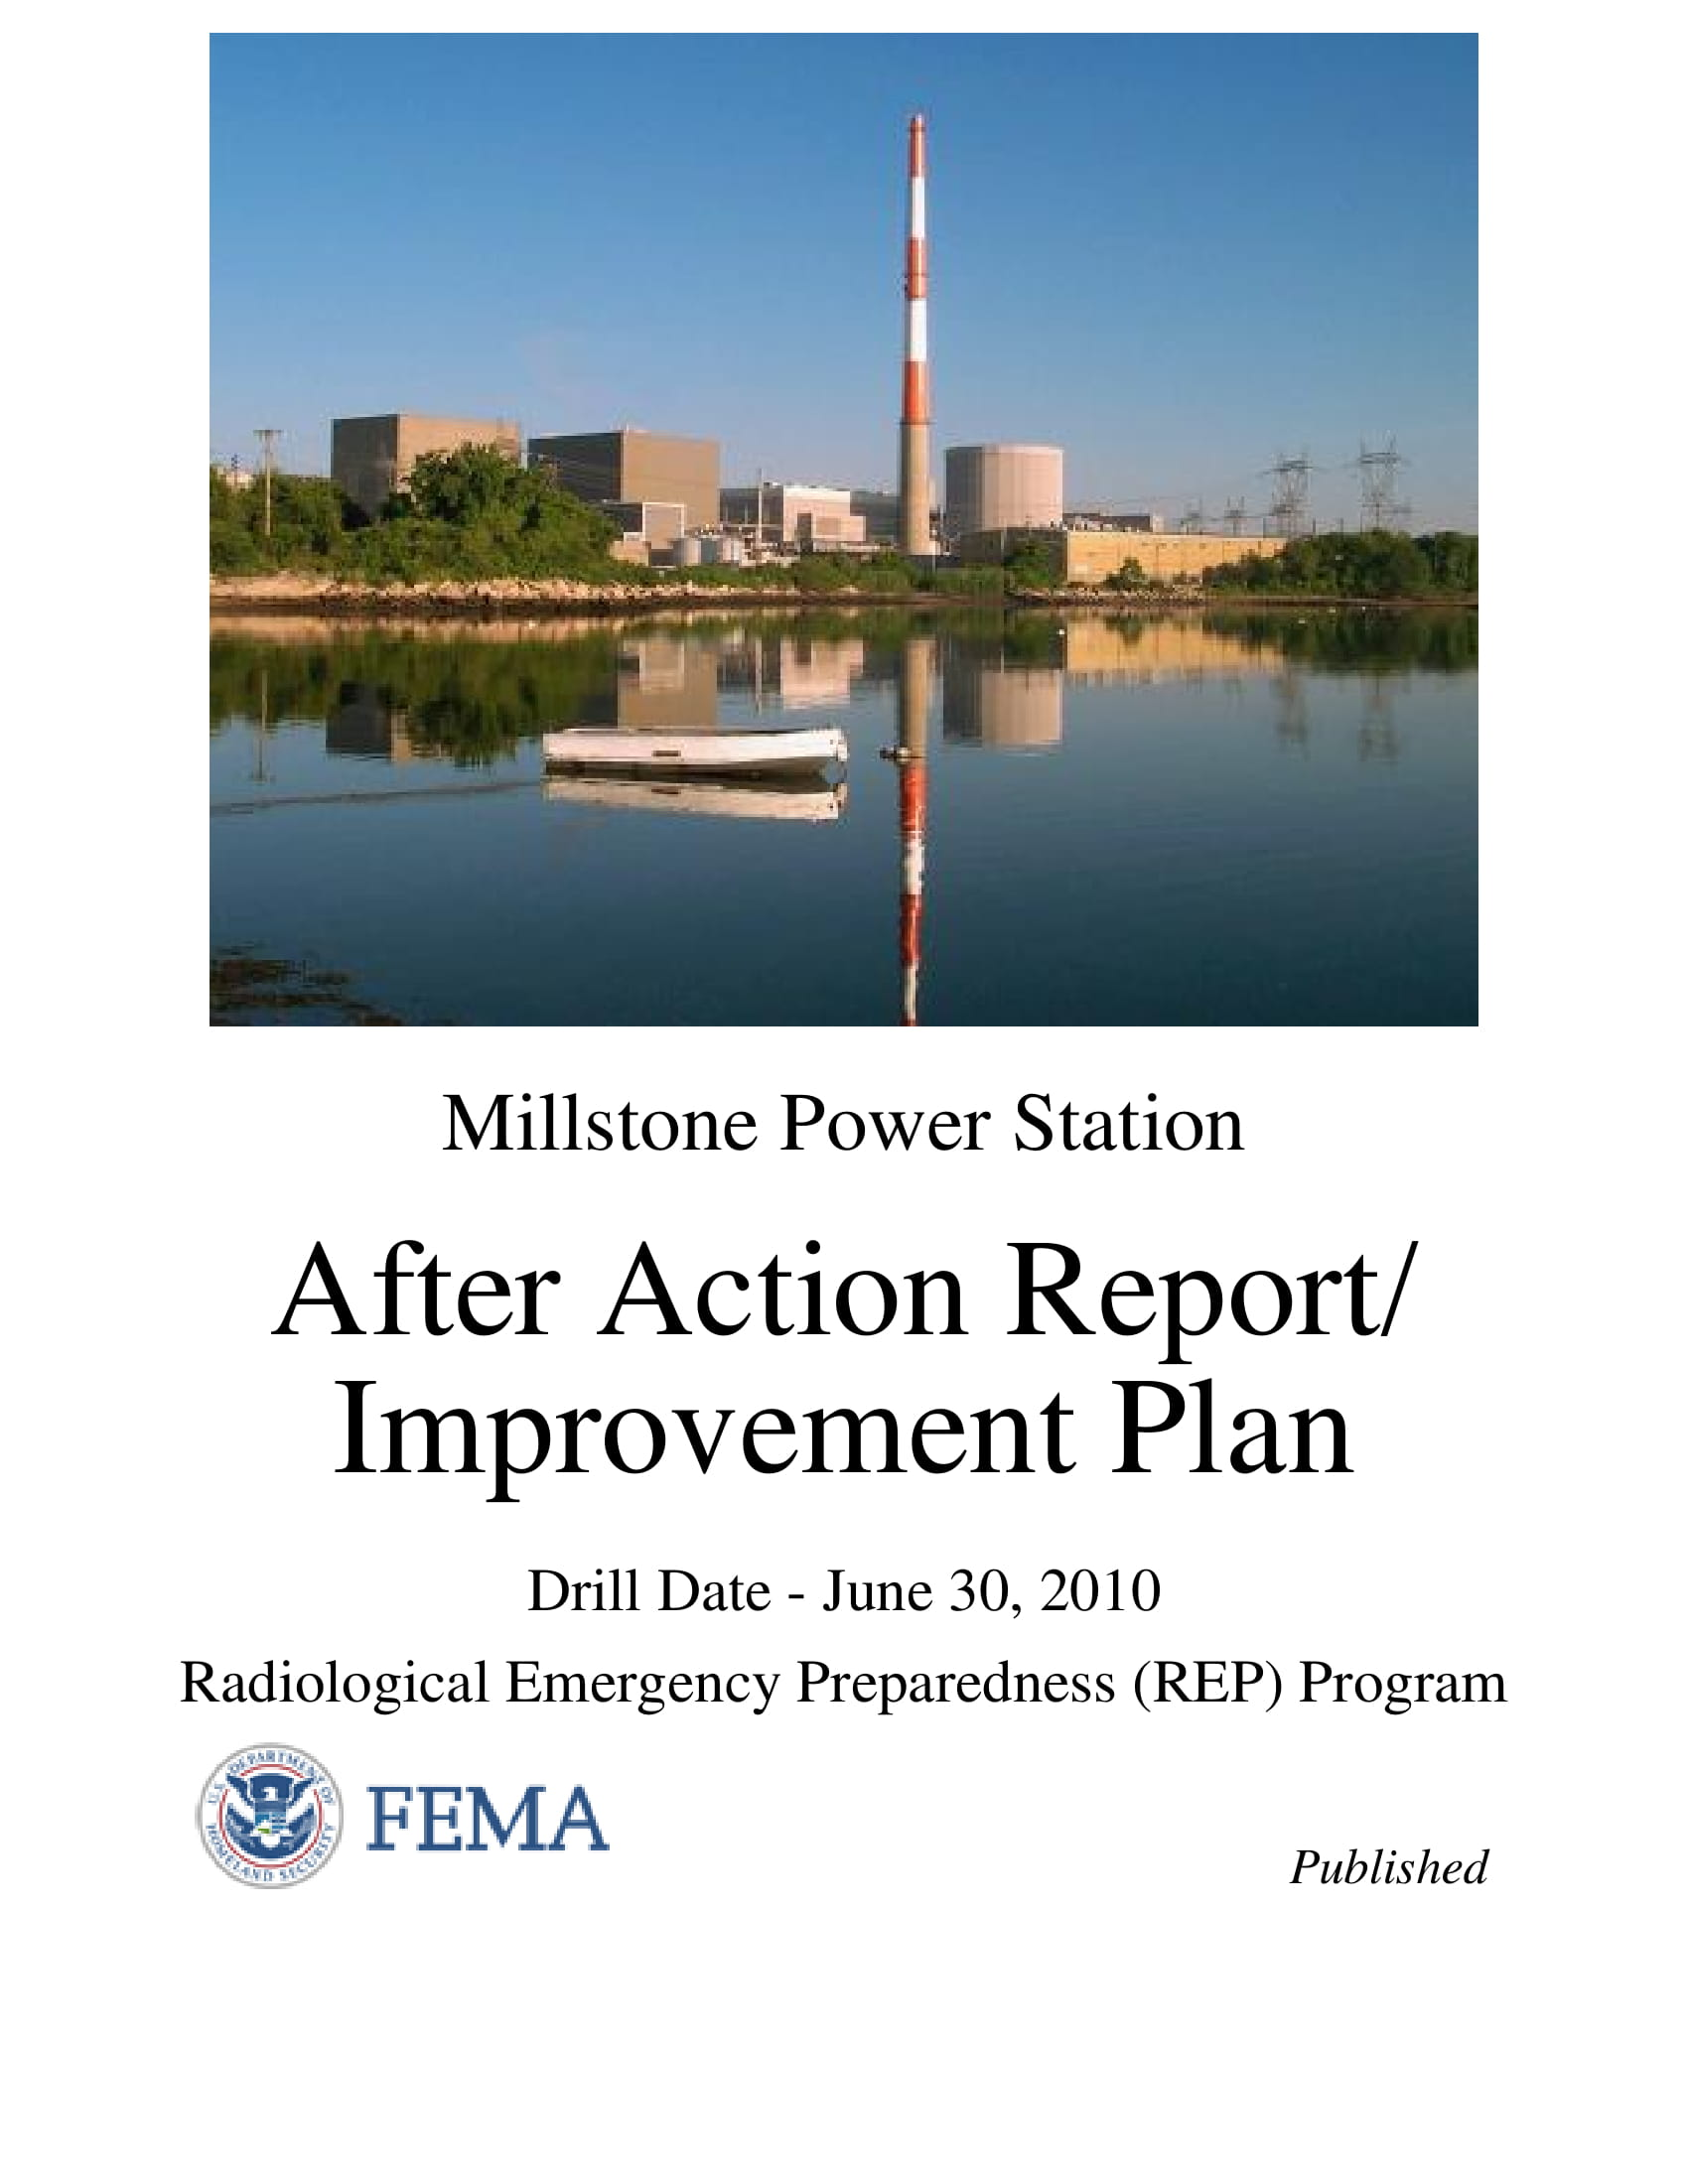 after action report and improvement plan for radiological emergency preparedness program example 01